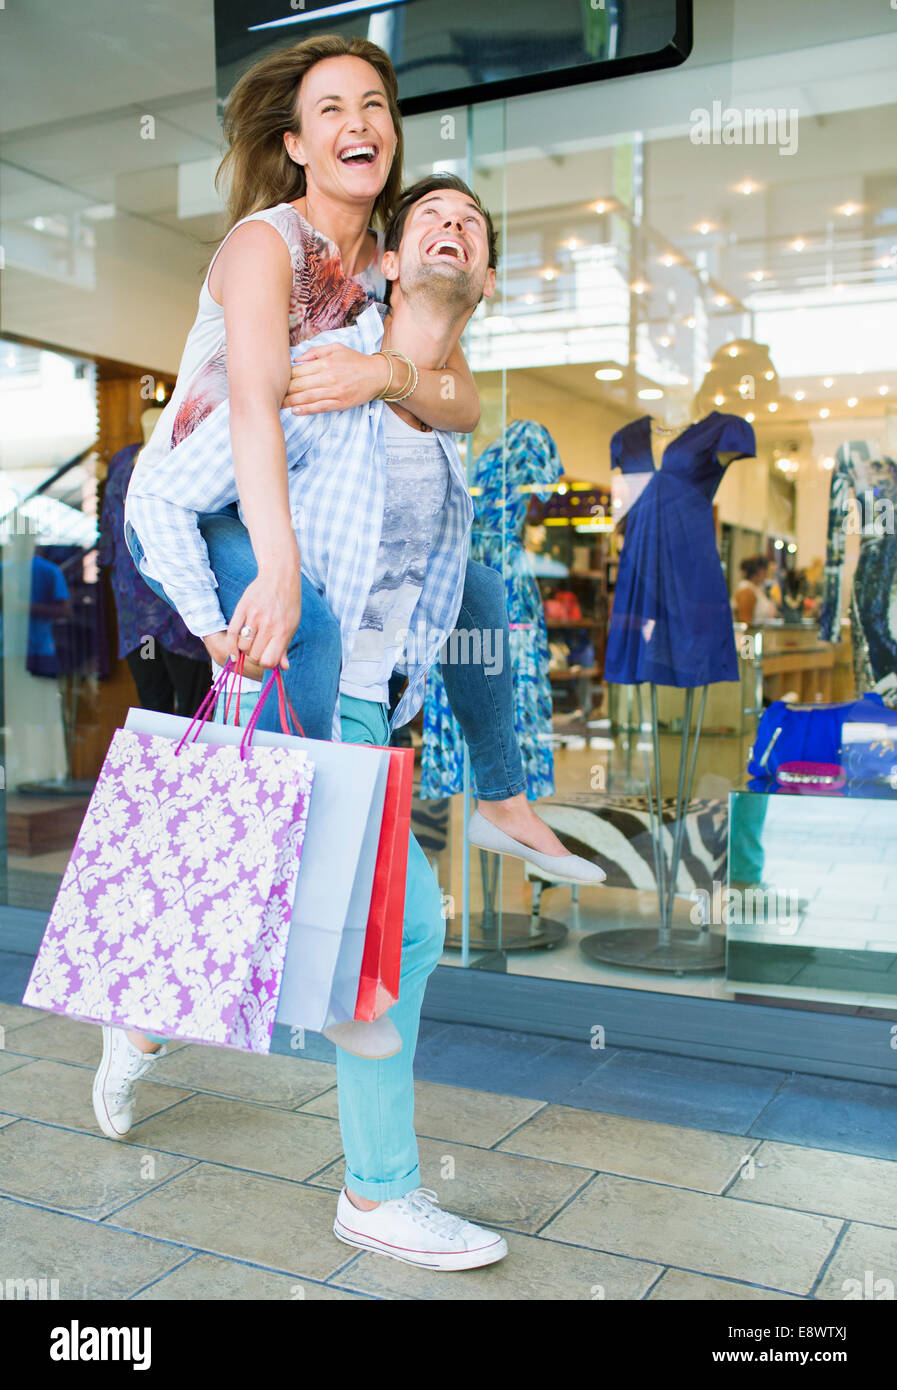 Man carrying girlfriend piggyback outside clothing store Stock Photo